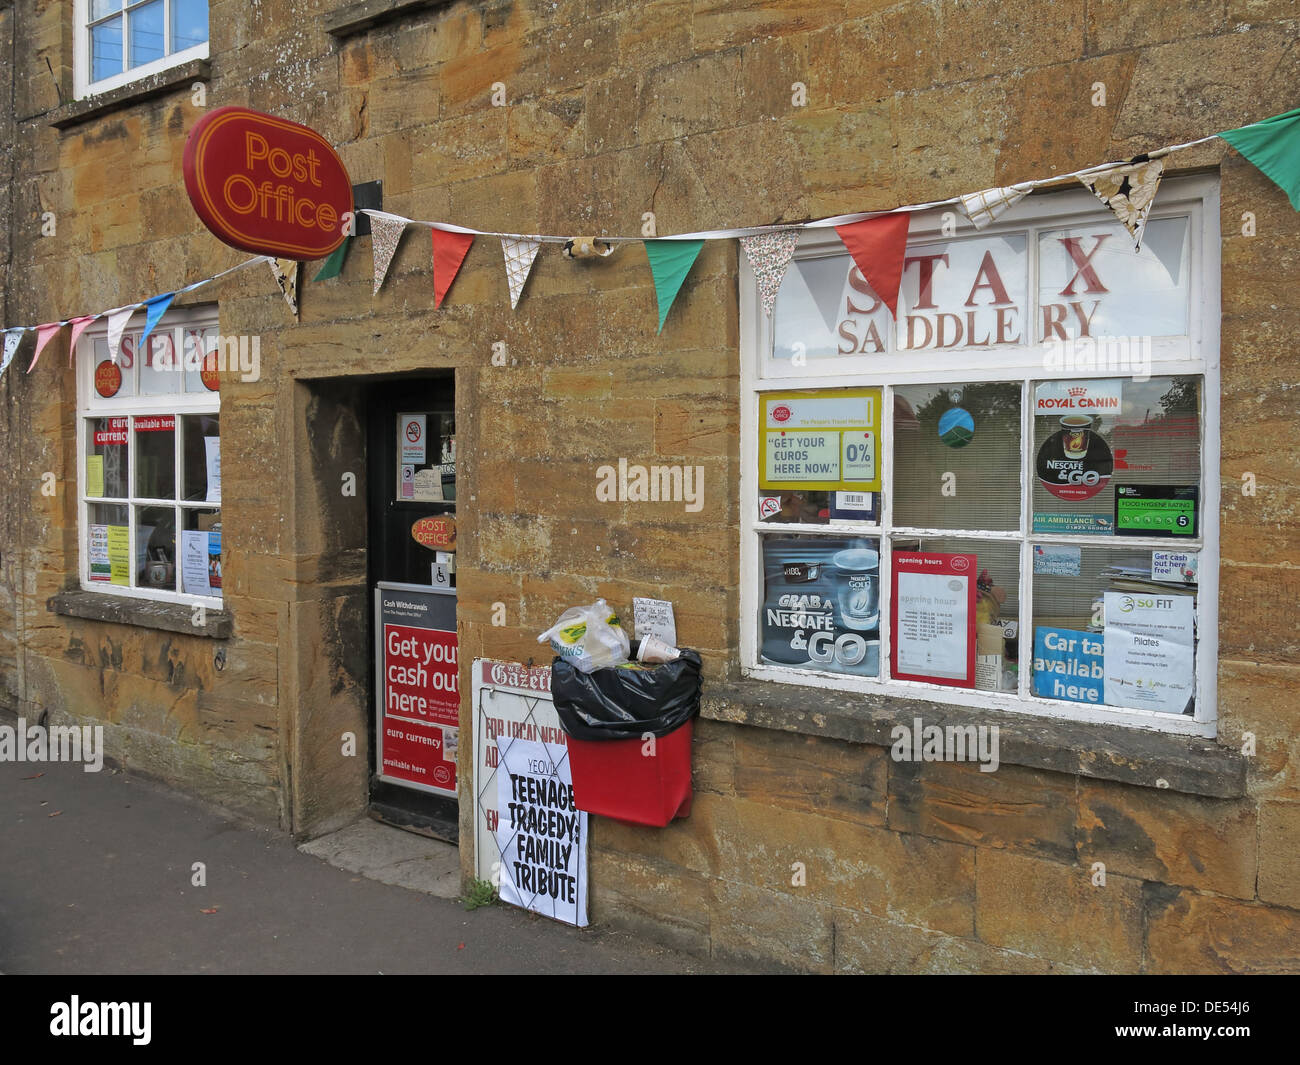 Montecute Post Office & Stax Saddery, village, South Somerset, England, UK TA15 6XD - Stock Image